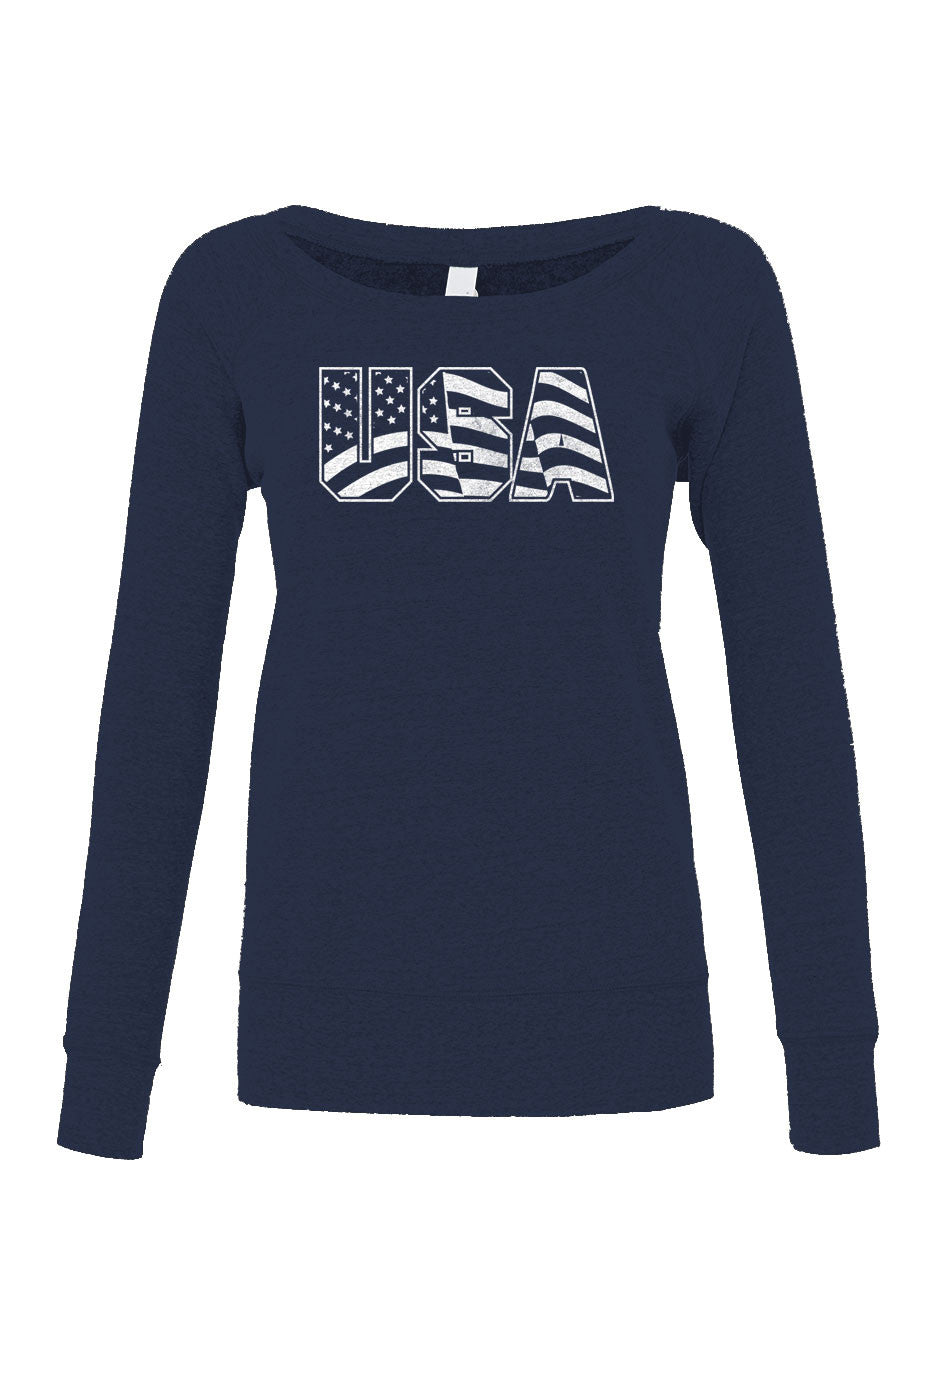 Women's USA Scoop Neck Fleece America Patriotic